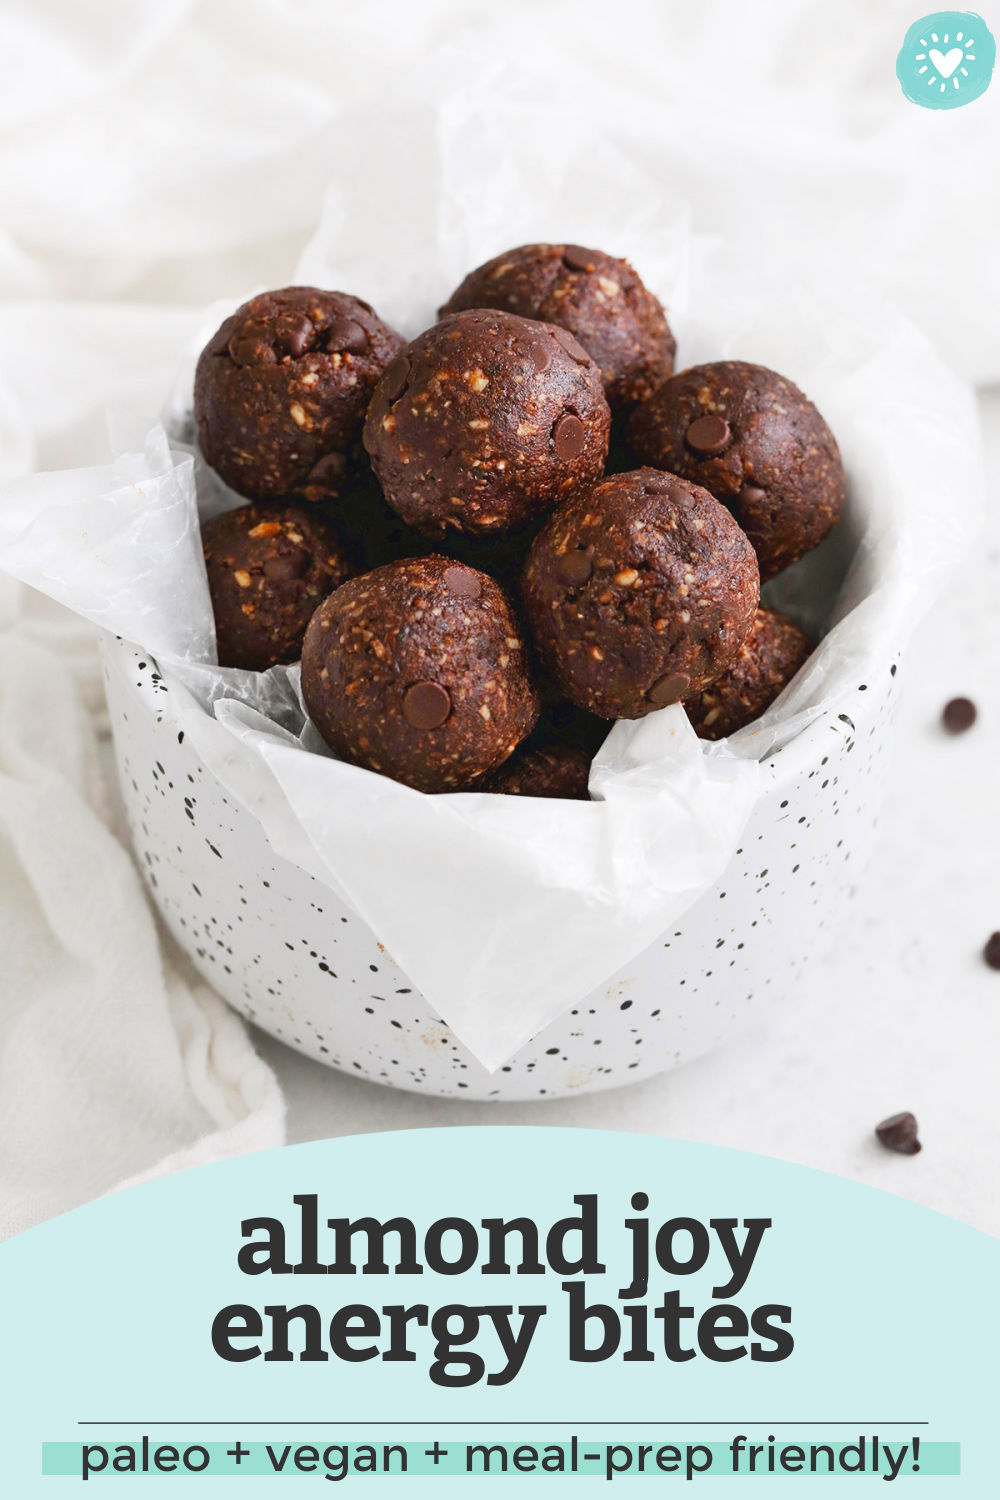 """Almond Joy Energy Bites in a white speckled bowl with a text overlay that reads """"almond joy energy bites. Vegan + paleo + meal-prep friendly"""""""